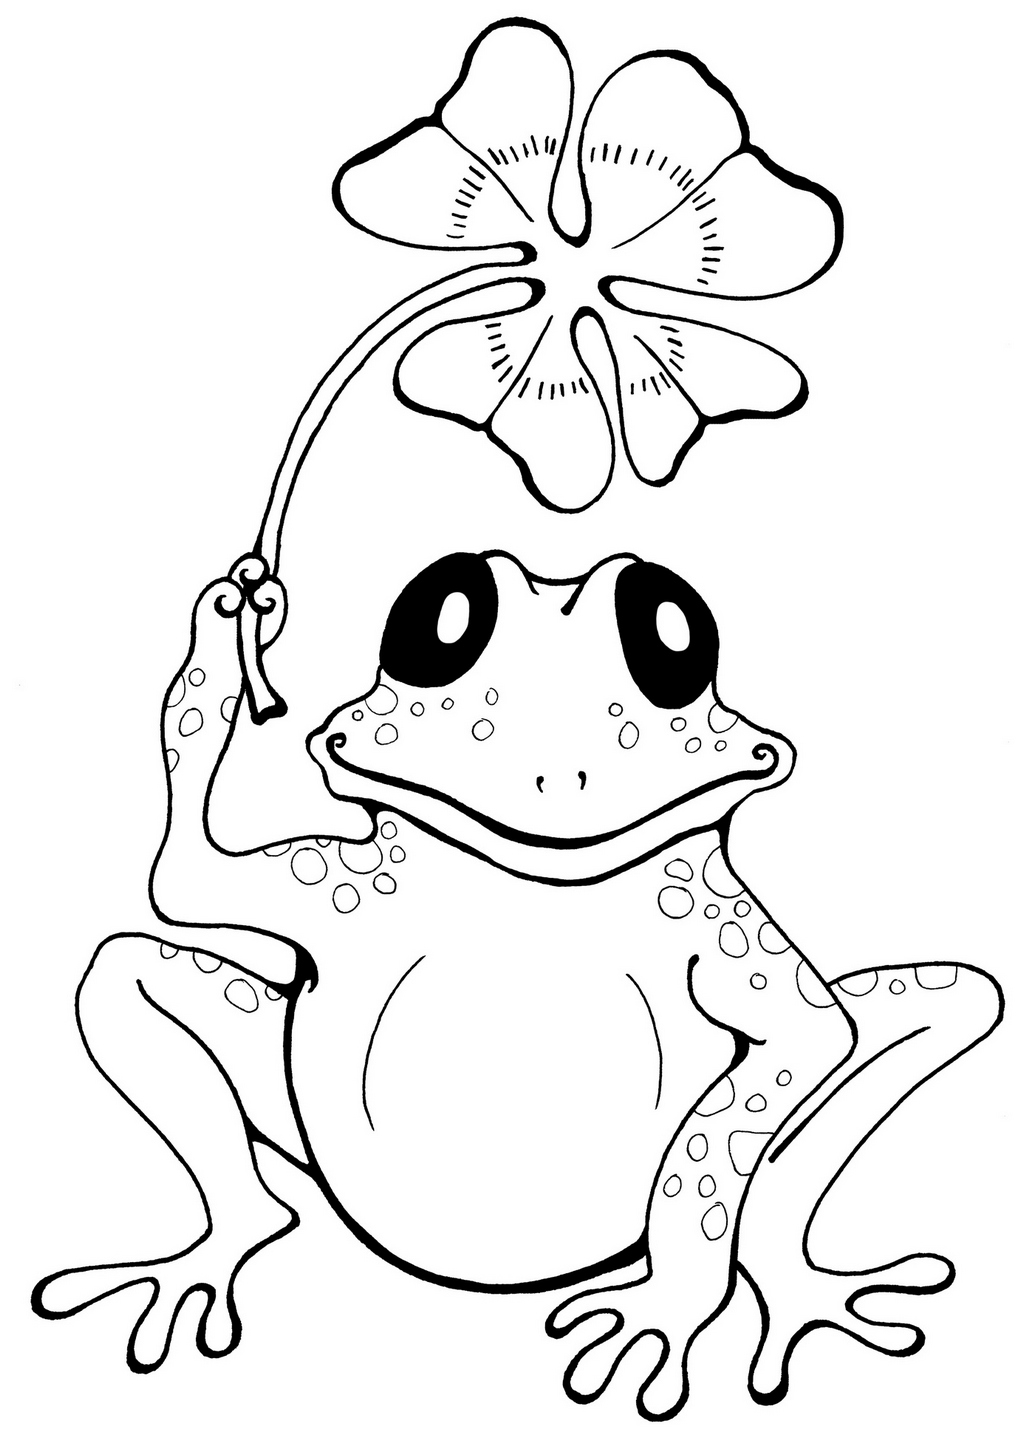 cute frog cartoon coloring book